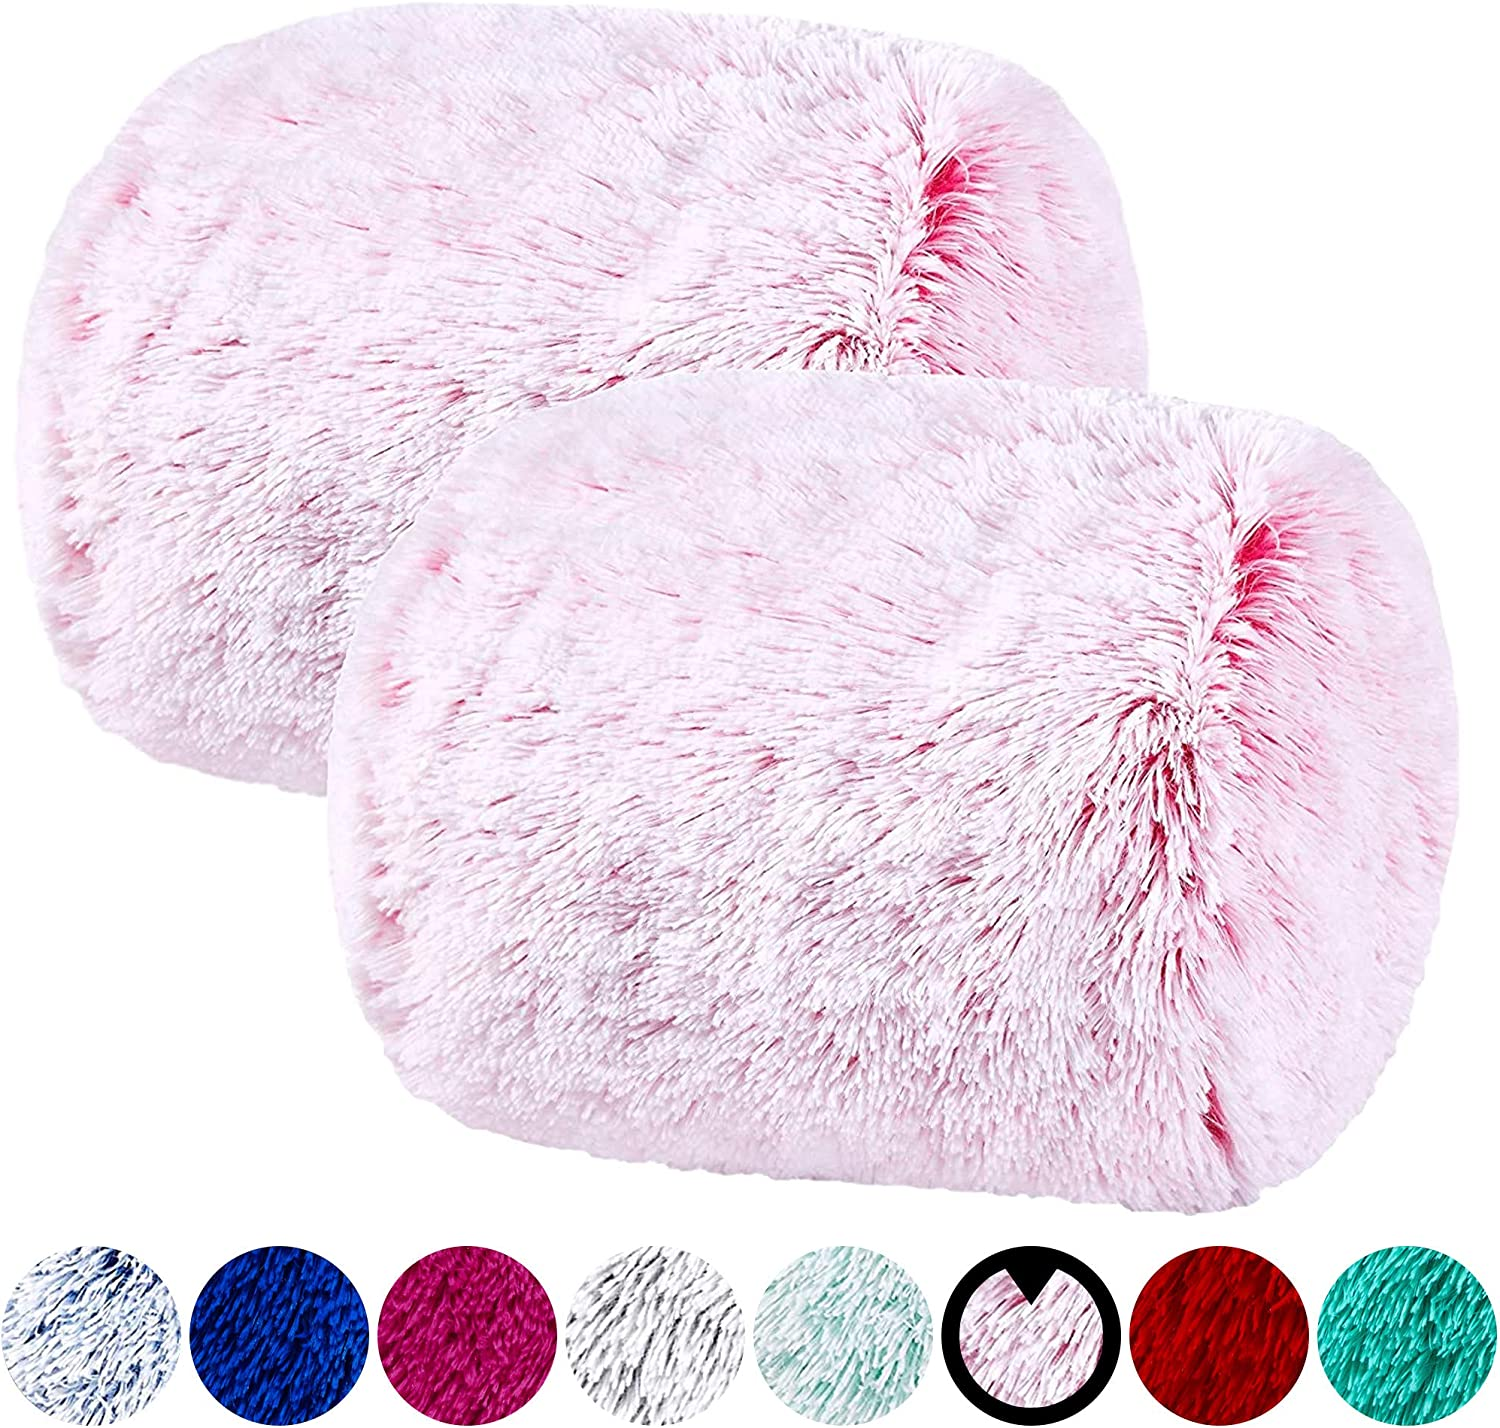 VCNY Home | Fluffy Faux Fur Decorative Pillow Set, Soft Fuzzy Fun Pillow for Kids Teens and College Decor, 2 Pack, Pink